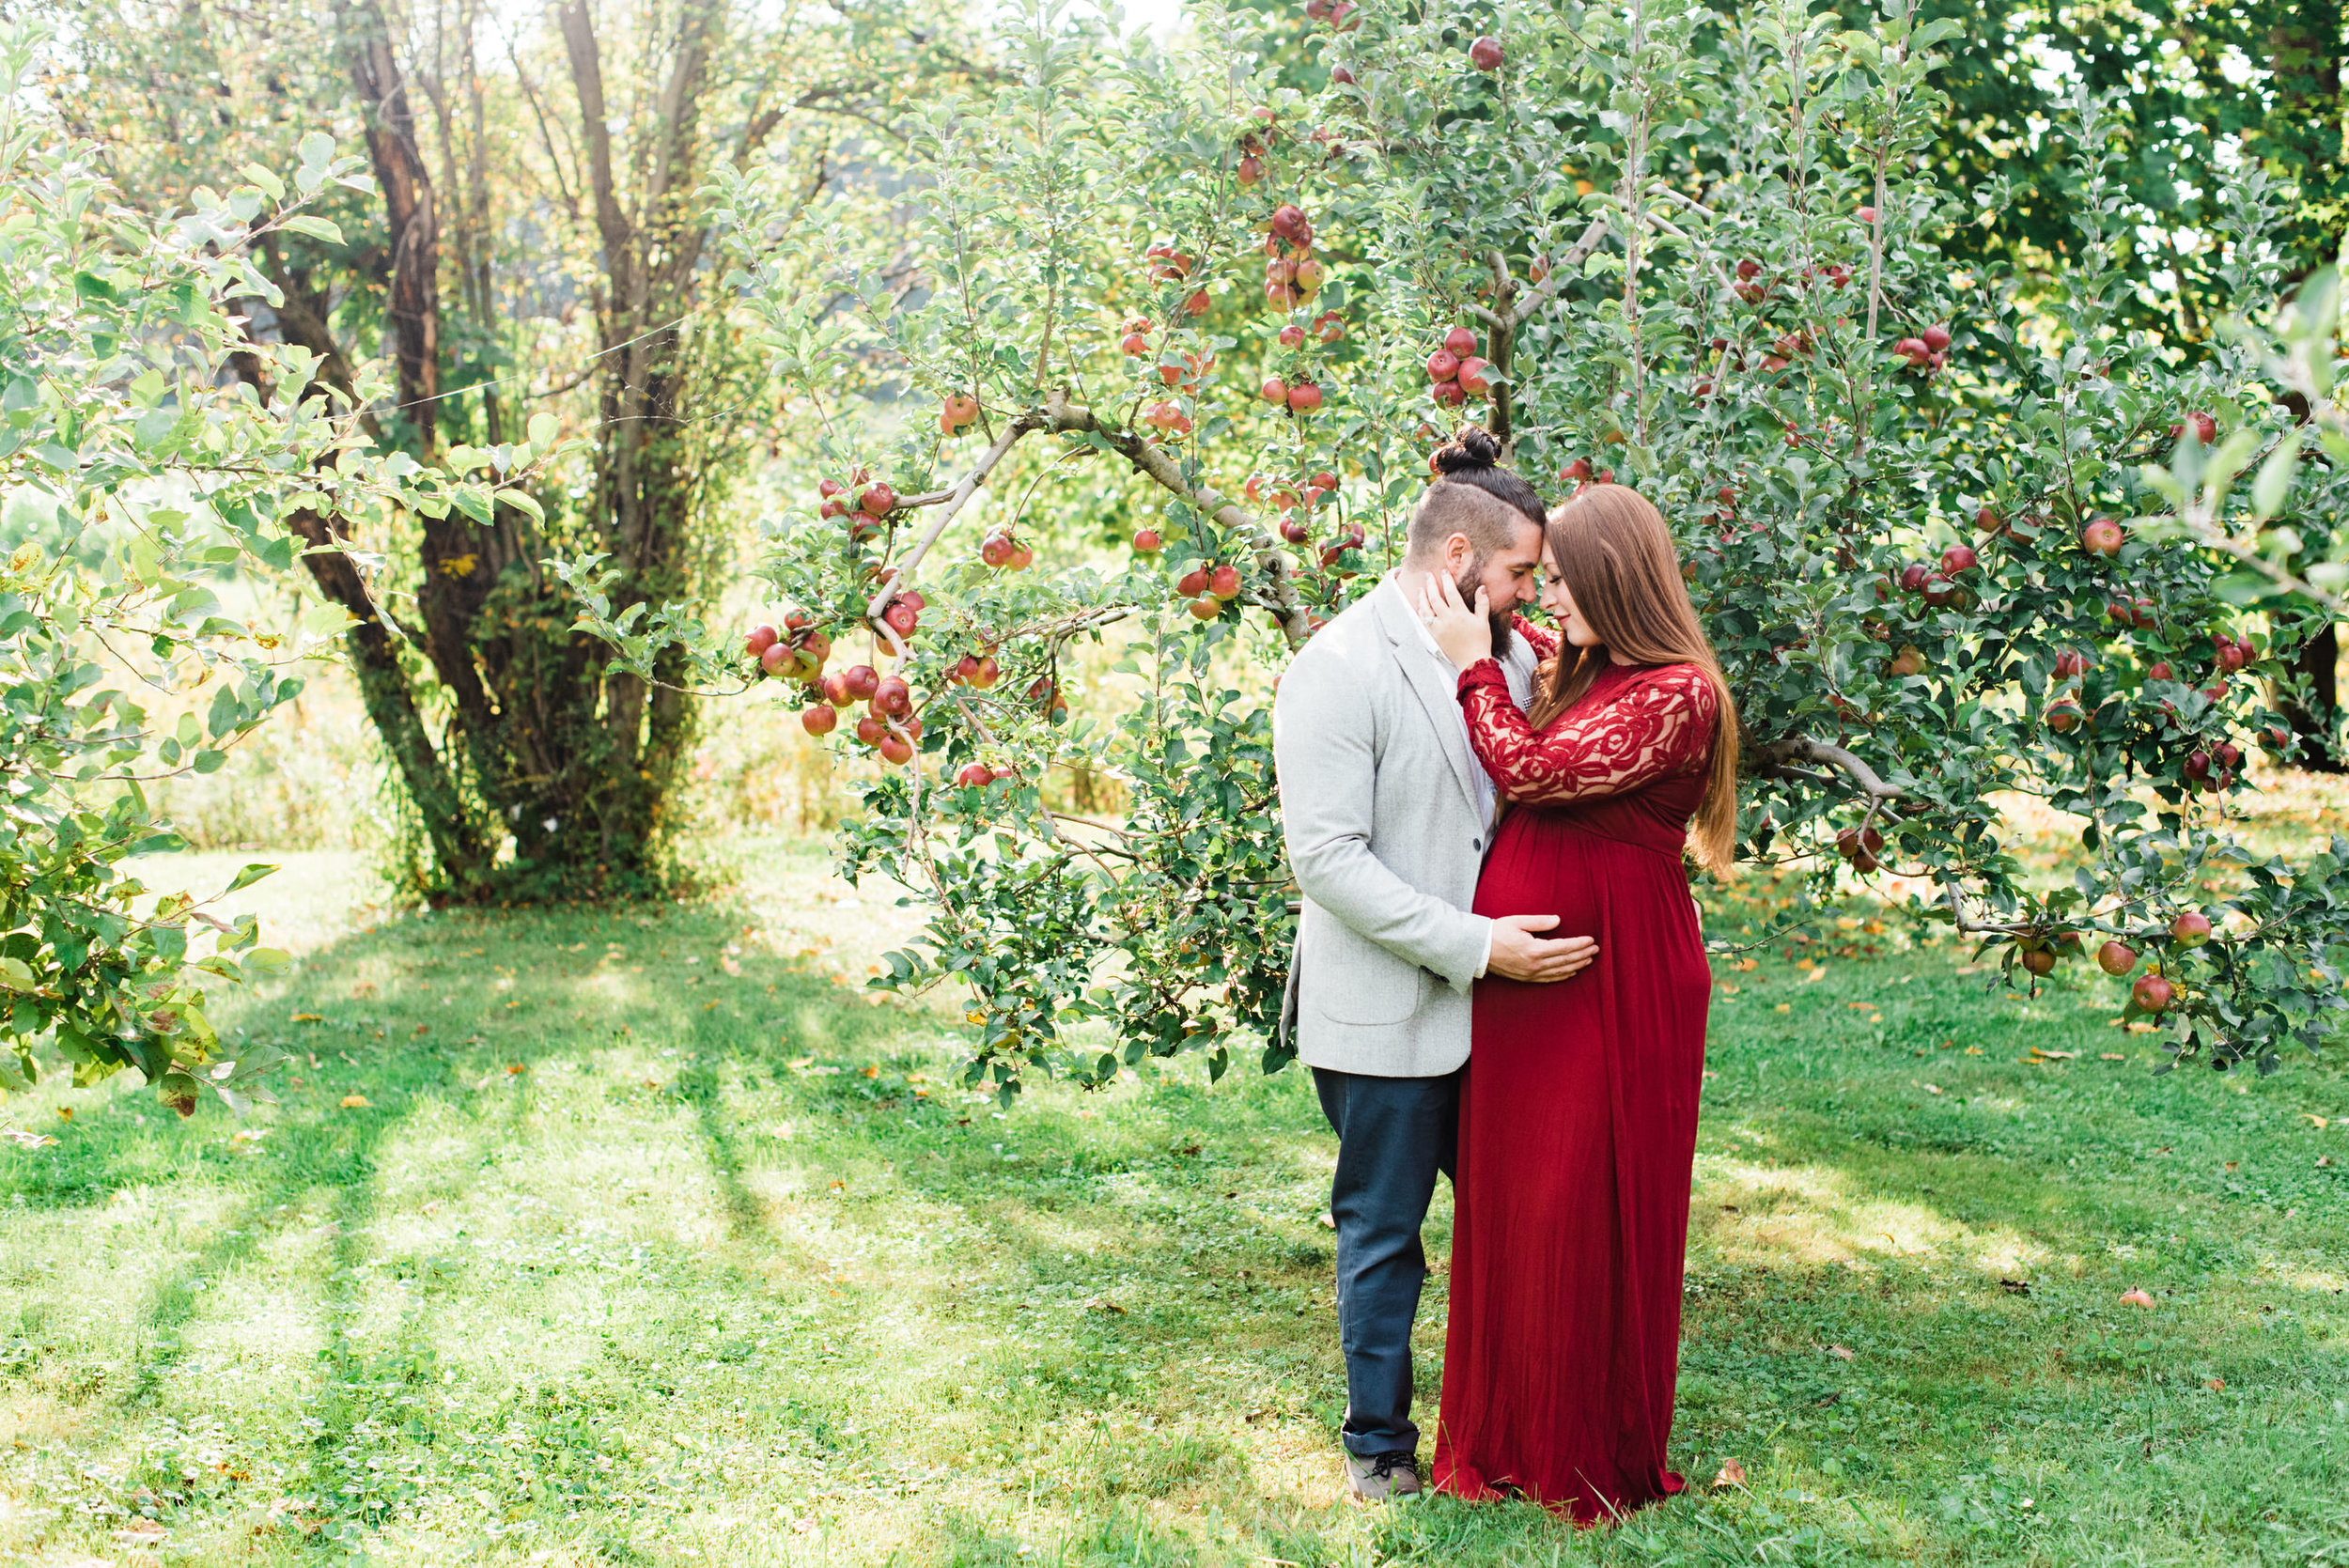 pittsburgh-maternity-photographers-winery-apple-orchard-session_3.jpg